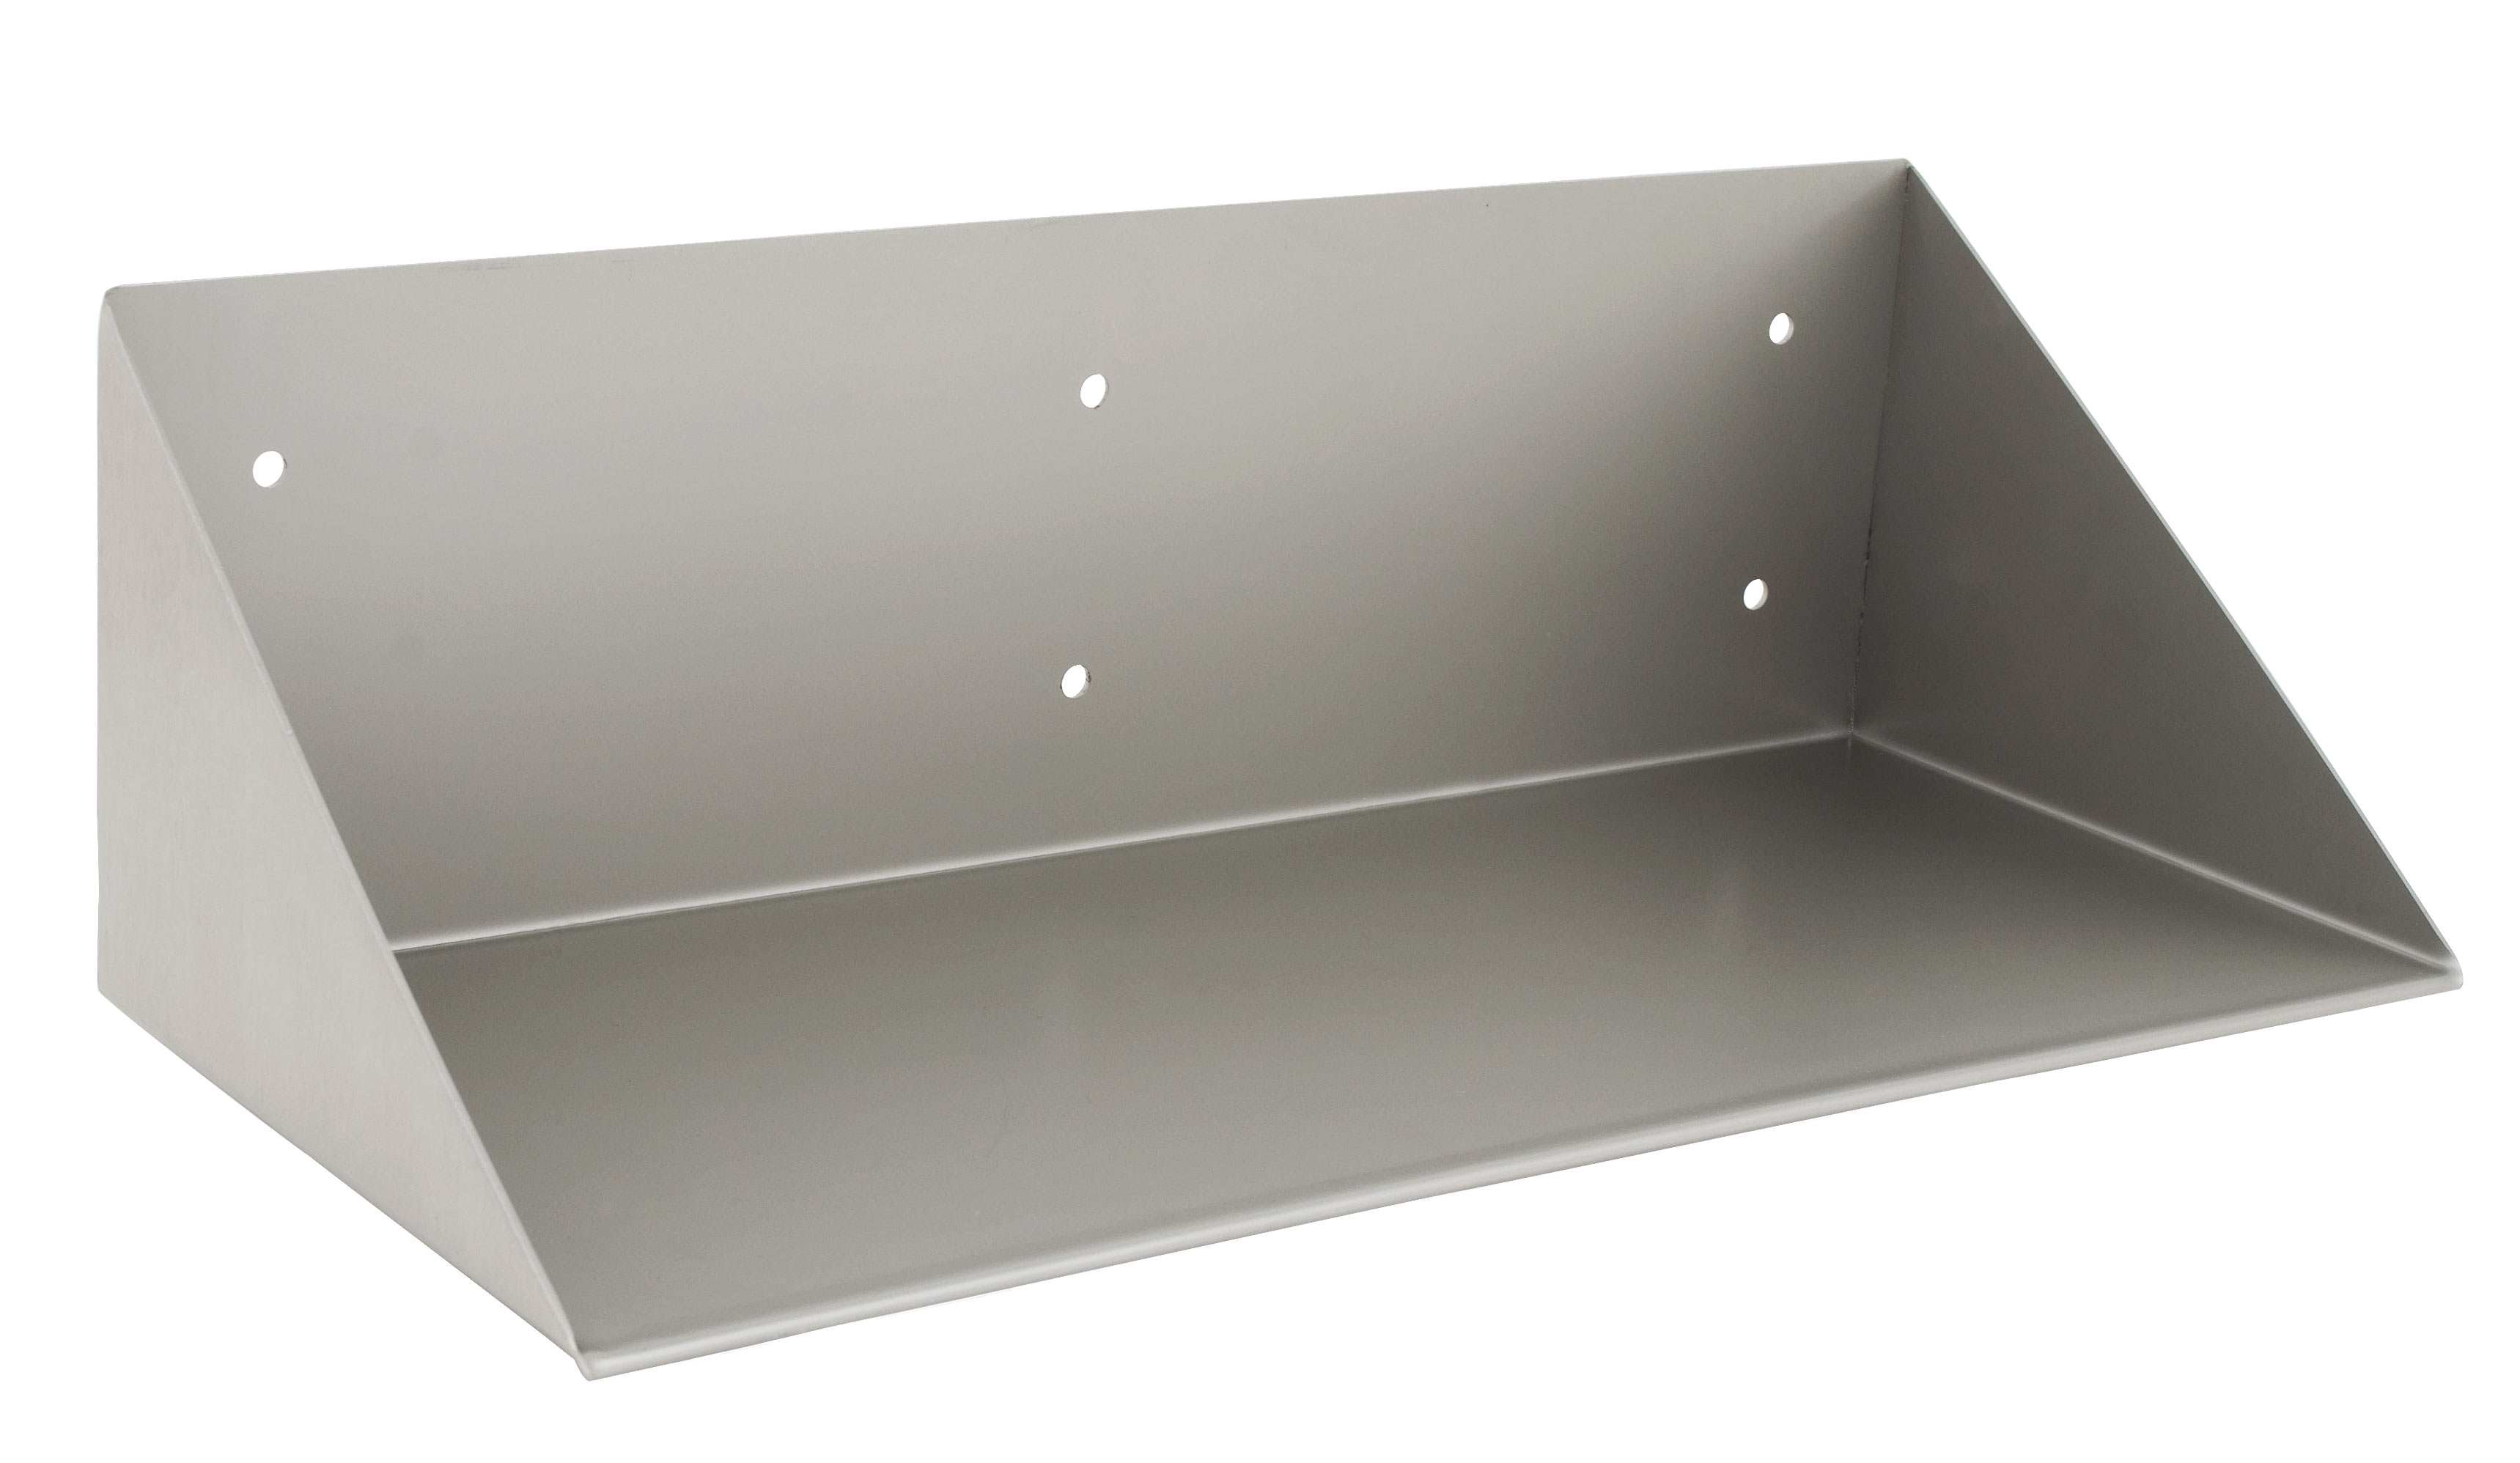 duty gsw mount double wall and heavy steel table shelf rack shelves cold work over stainless pot for